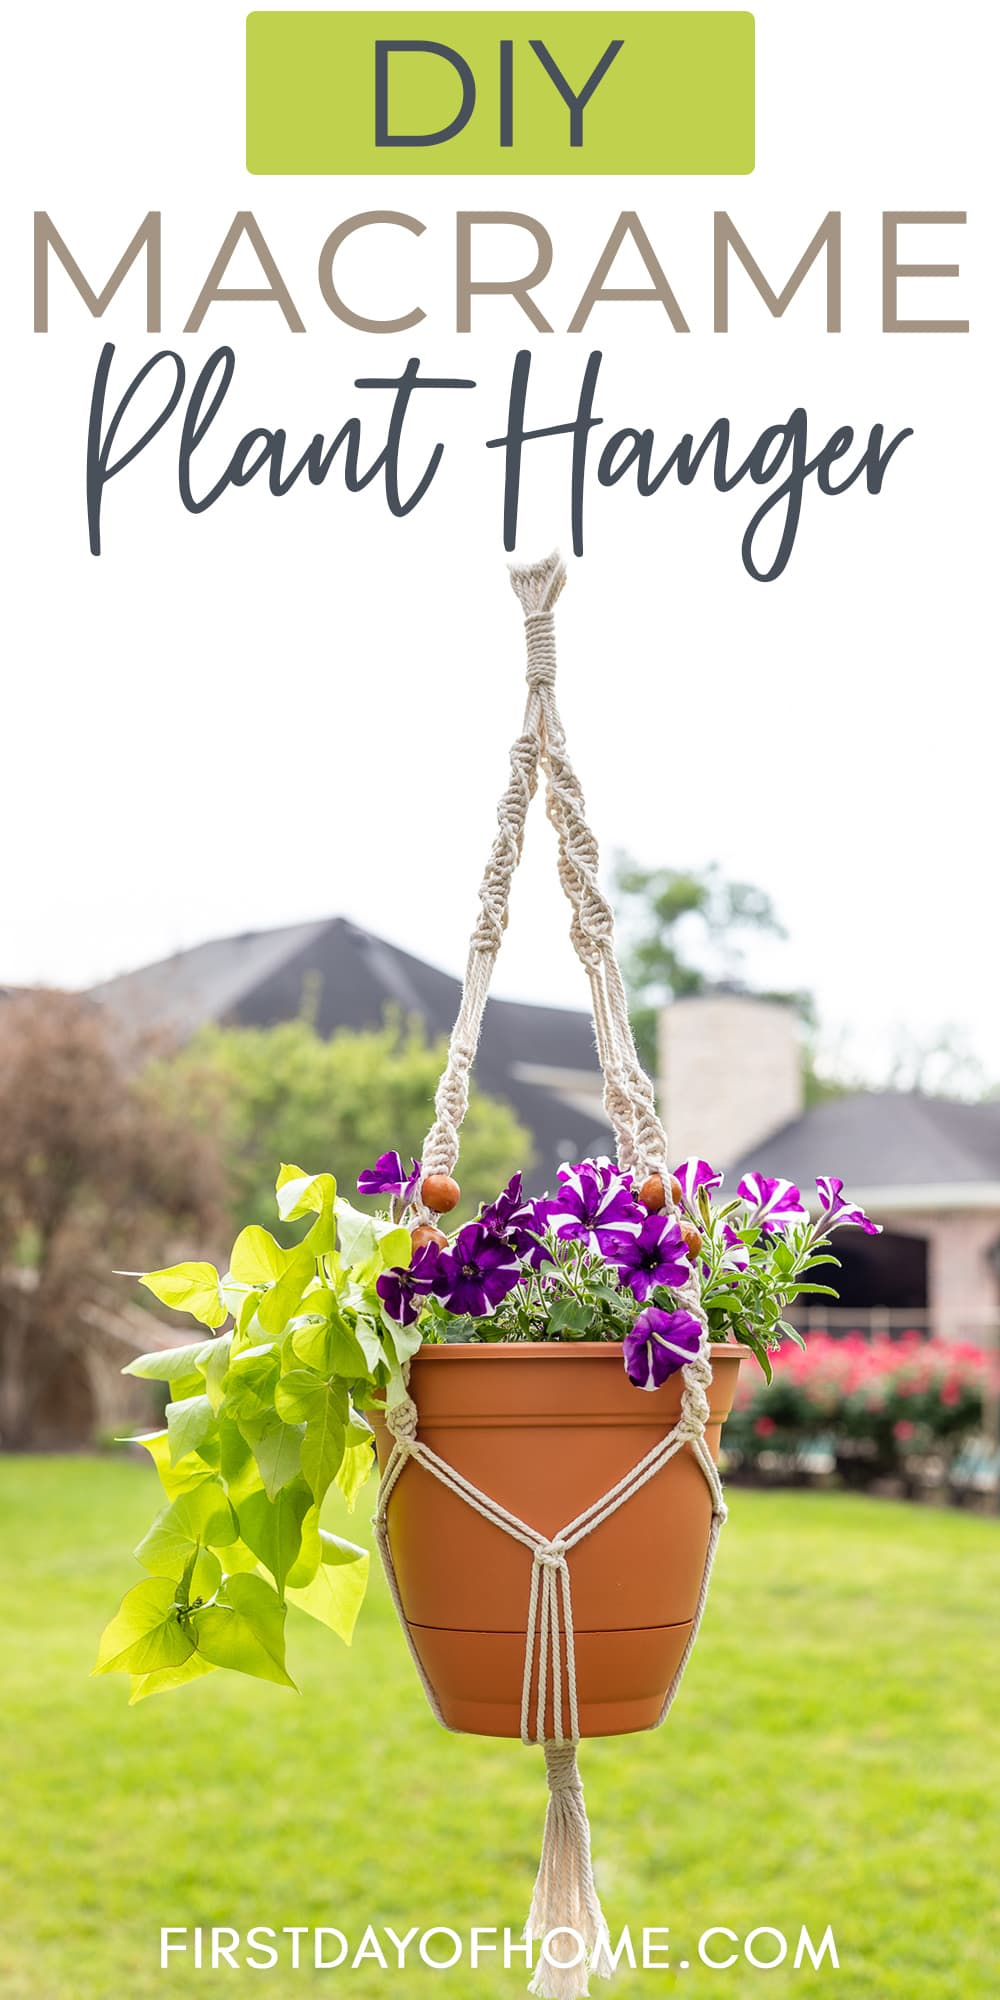 Macrame hanging basket filled with petunias and sweet potato vine